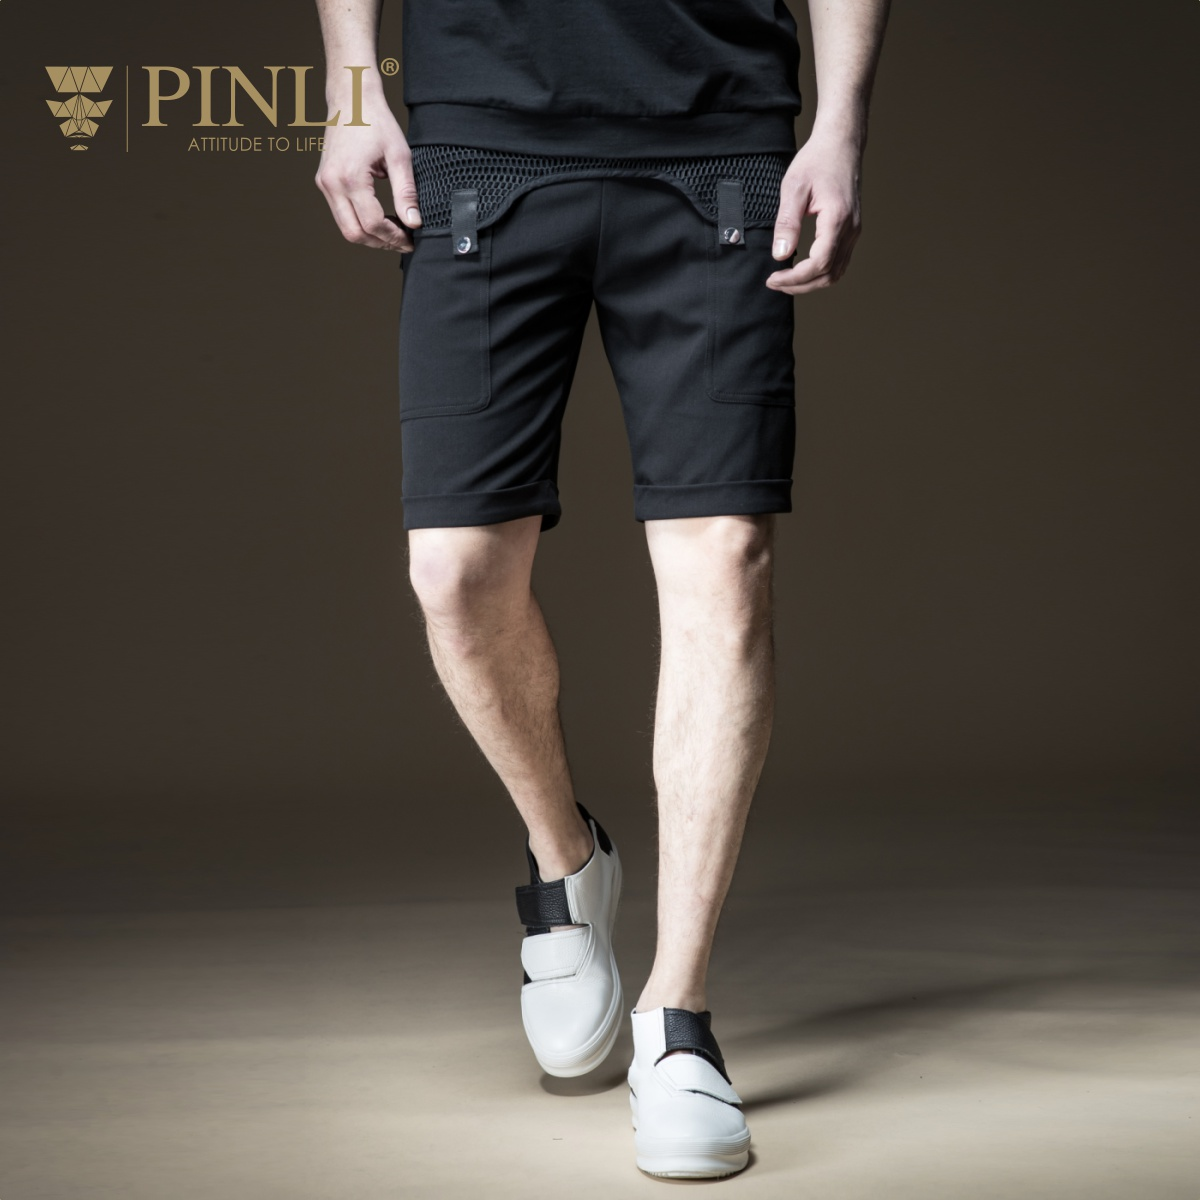 2019 Shorts Fitness Men Pinli Product Made Summer New Men's Cultivate Morality Splicing Leisure Five Minutes Casual B182317314